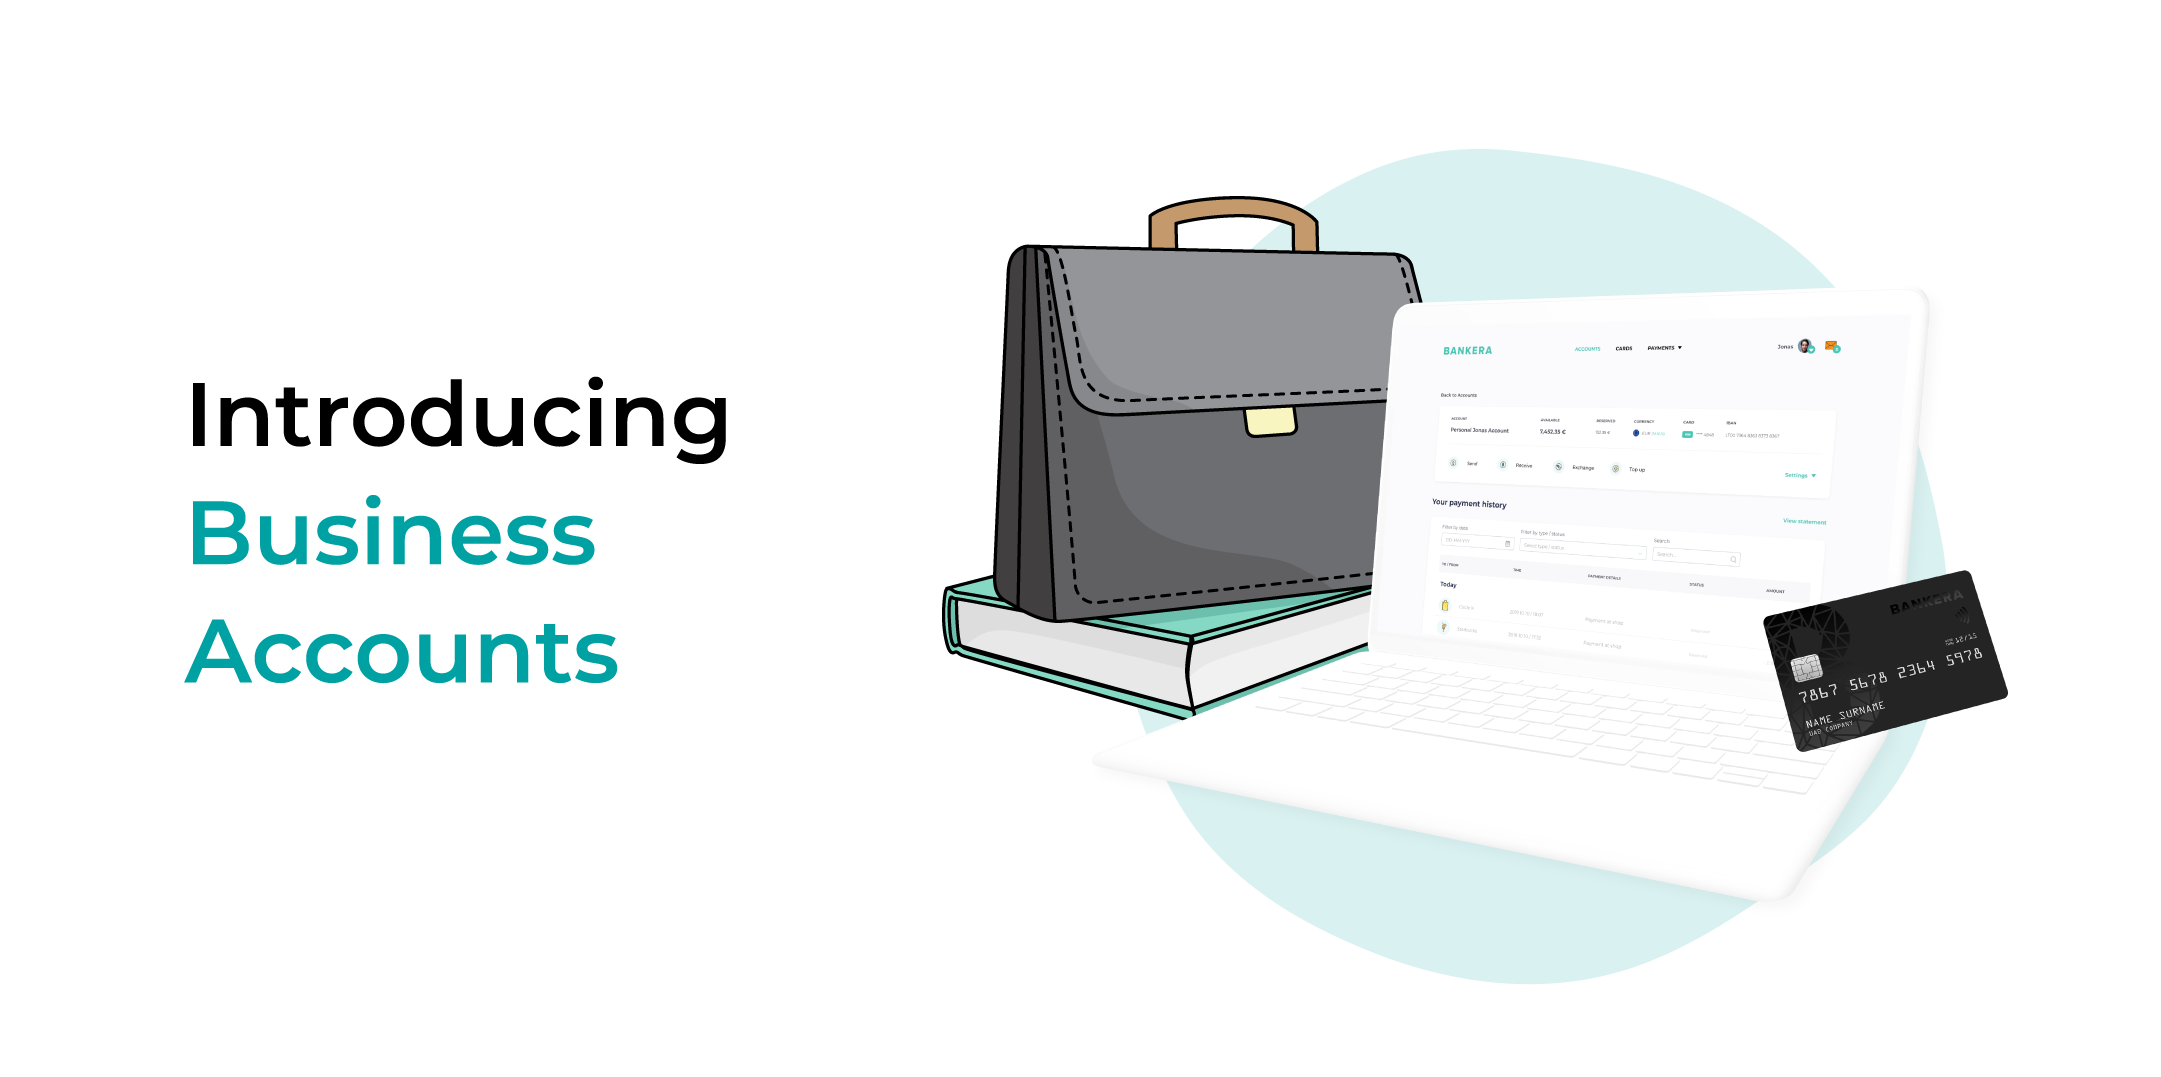 BANKERA is introducing Business Accounts !